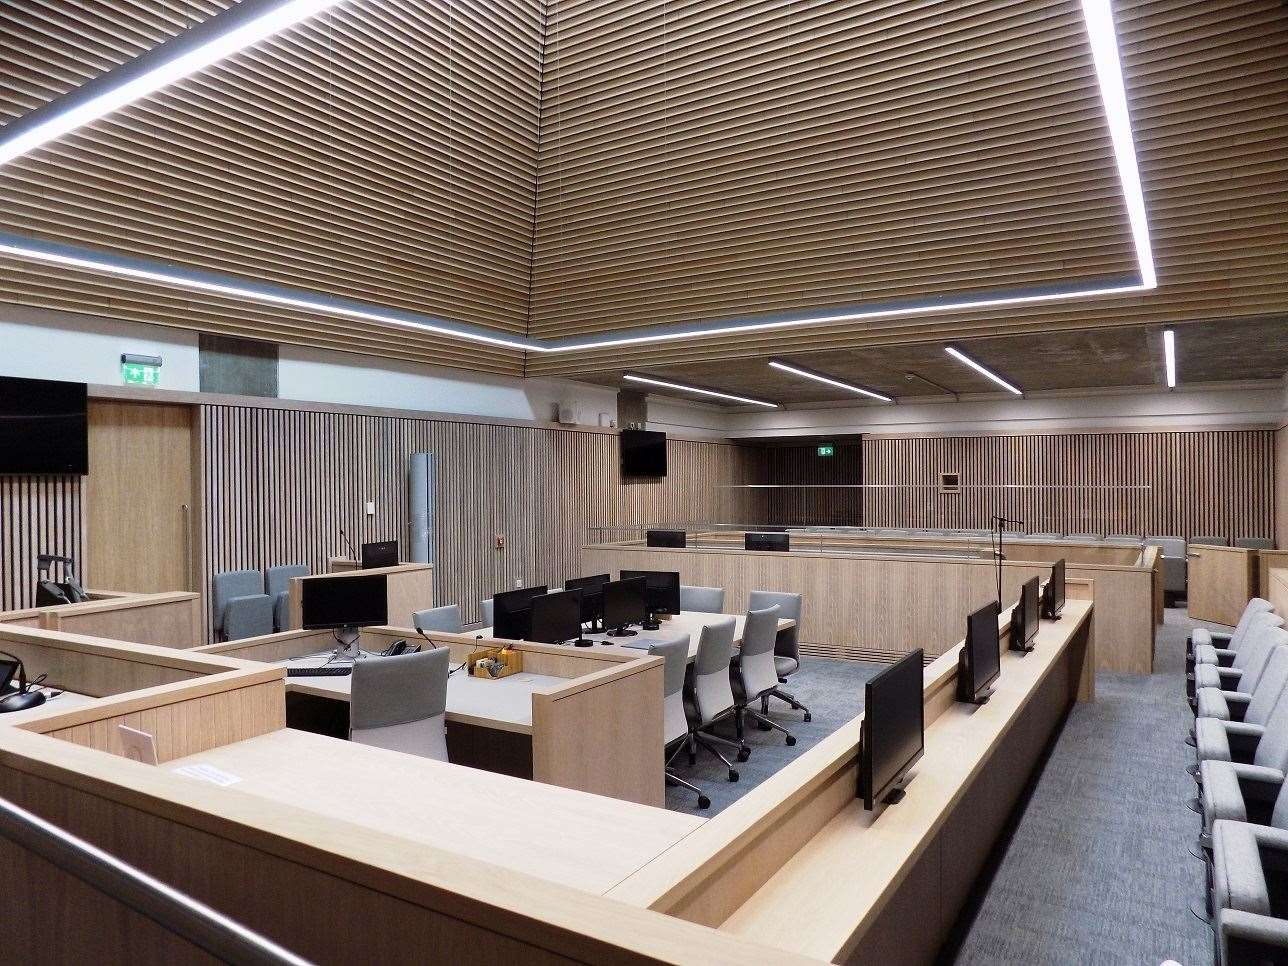 Inverness Sheriff Court.